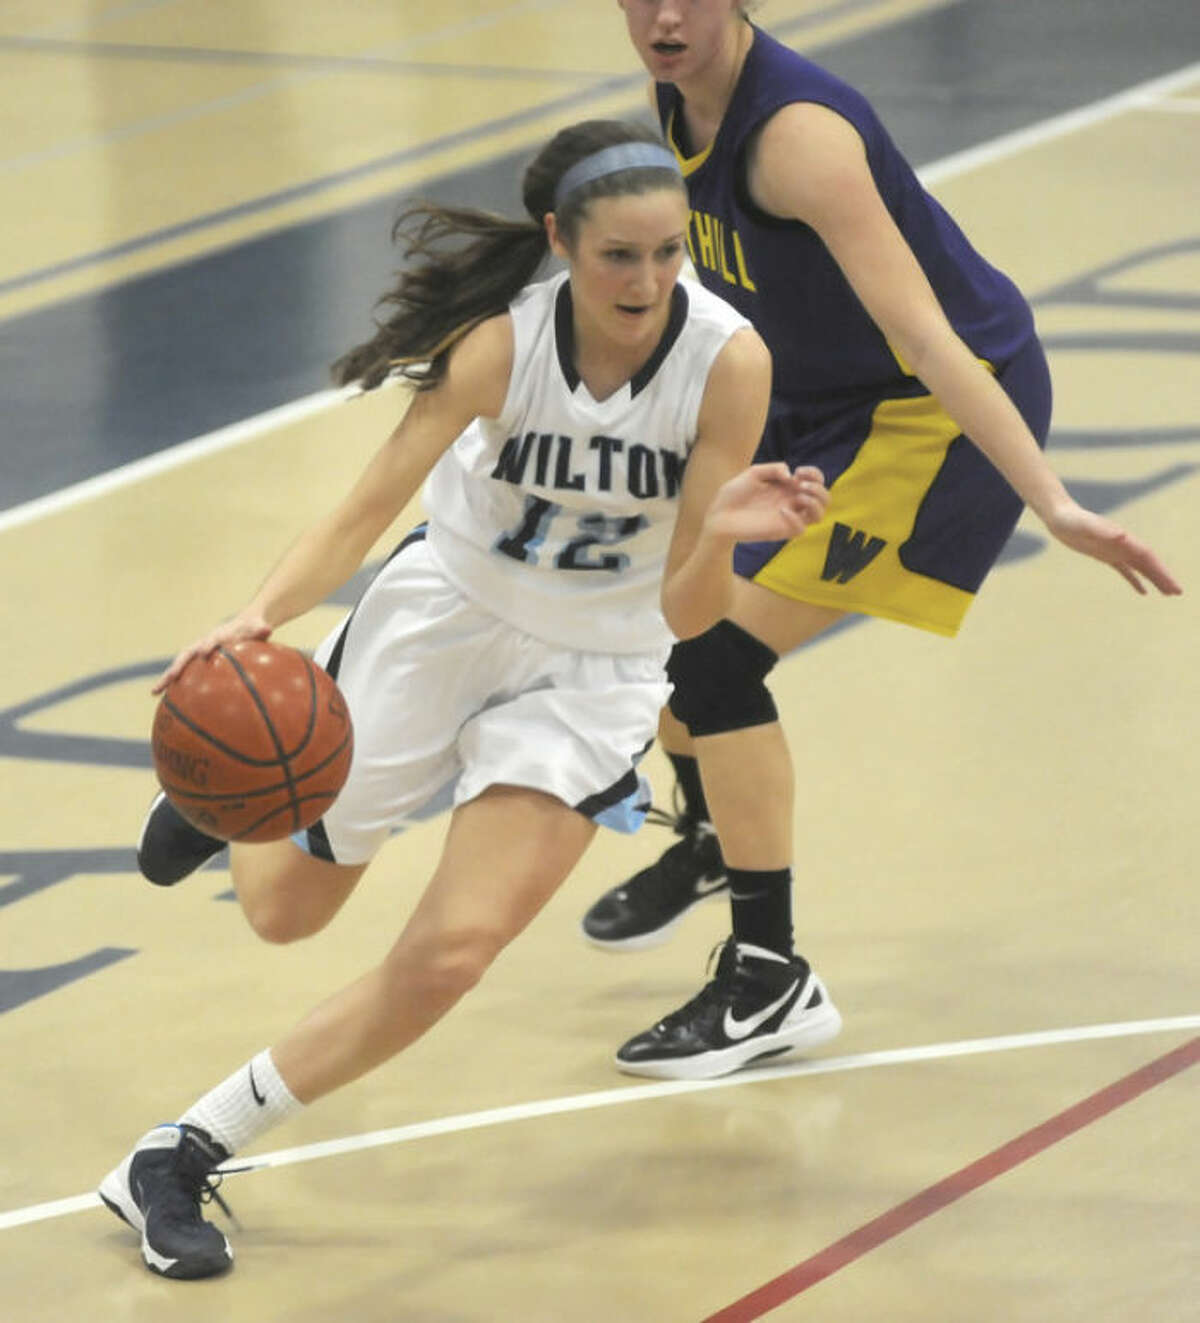 Hour photo/John Nash Wilton's Haley English drives past a Westhill defender on the way to the basket during Monday's game in Wilton.